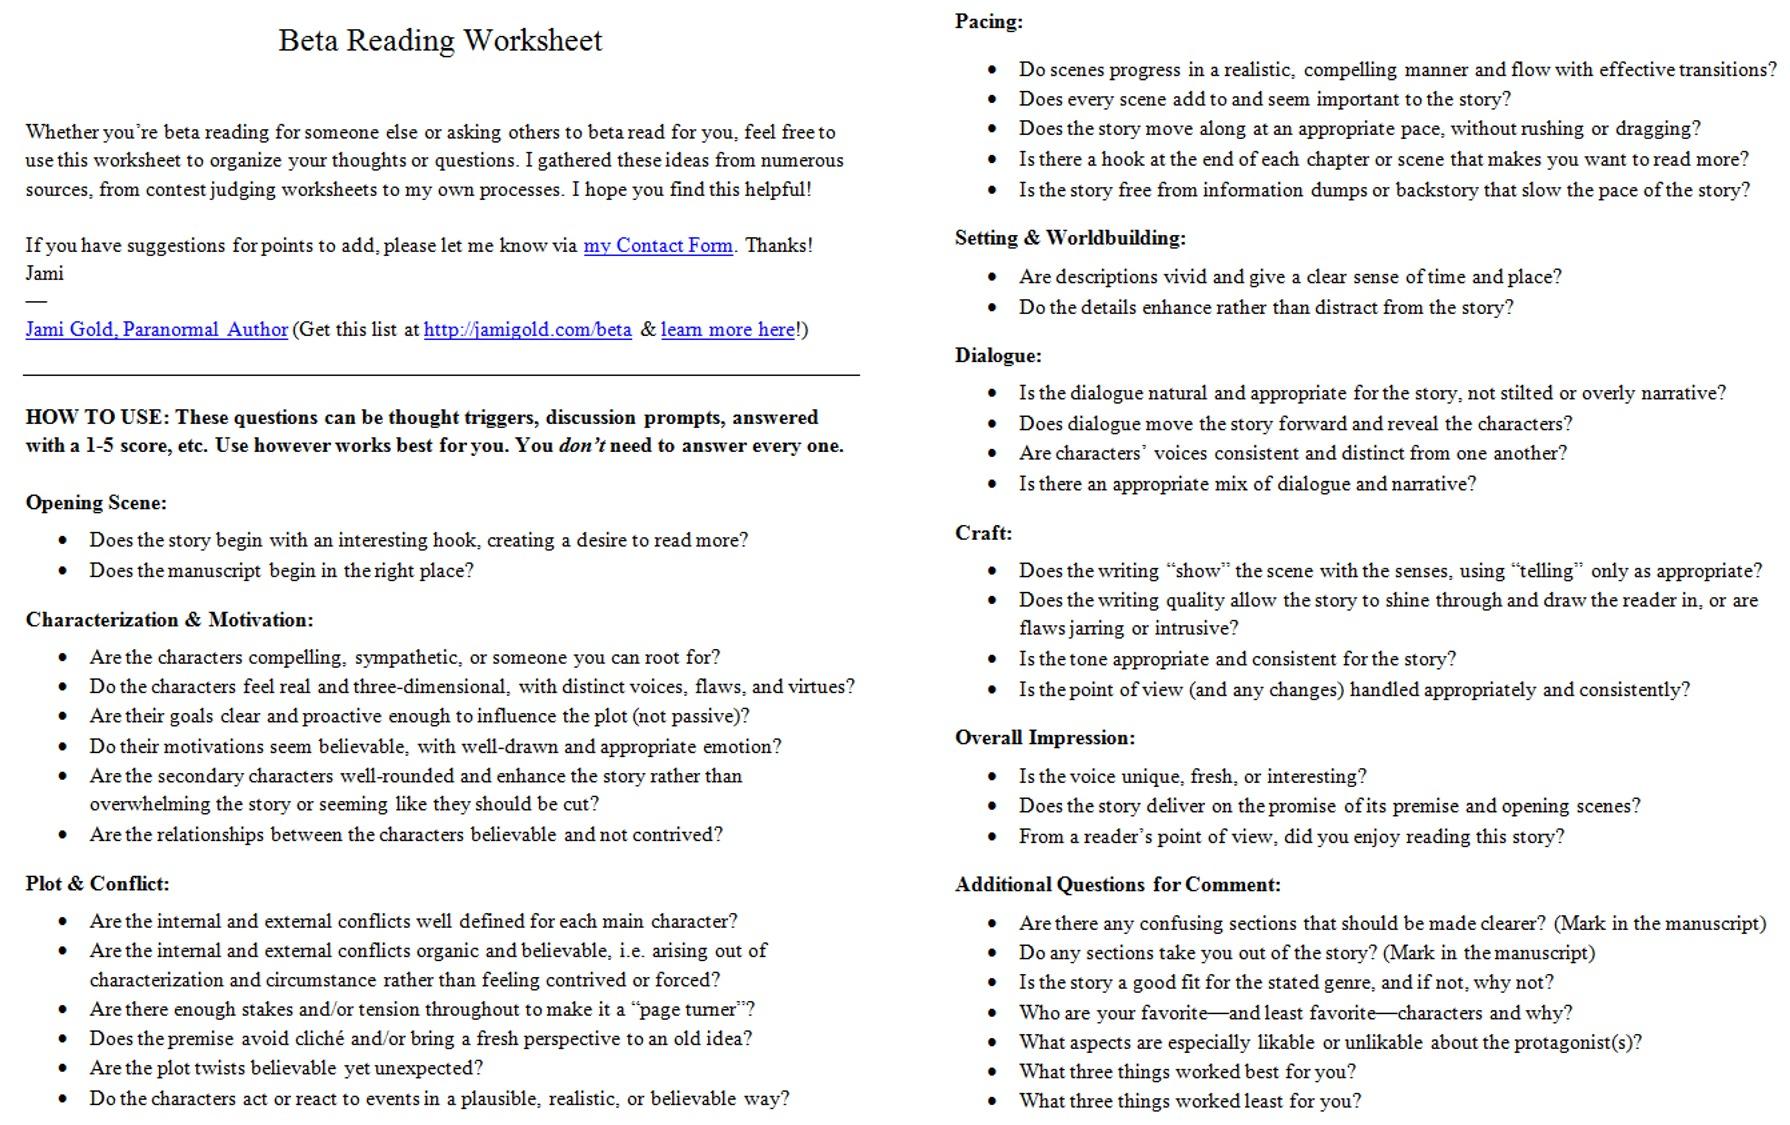 Aldiablosus  Sweet Worksheets For Writers  Jami Gold Paranormal Author With Magnificent Screen Shot Of The Twopage Beta Reading Worksheet With Comely Subjunctive Spanish Worksheet Also Said Sight Word Worksheet In Addition Worksheets On Proportional Relationships And Recognizing Sentences Worksheet As Well As Skin And Body Membranes Worksheet Answers Additionally Free Printable Name Tracing Worksheets From Jamigoldcom With Aldiablosus  Magnificent Worksheets For Writers  Jami Gold Paranormal Author With Comely Screen Shot Of The Twopage Beta Reading Worksheet And Sweet Subjunctive Spanish Worksheet Also Said Sight Word Worksheet In Addition Worksheets On Proportional Relationships From Jamigoldcom